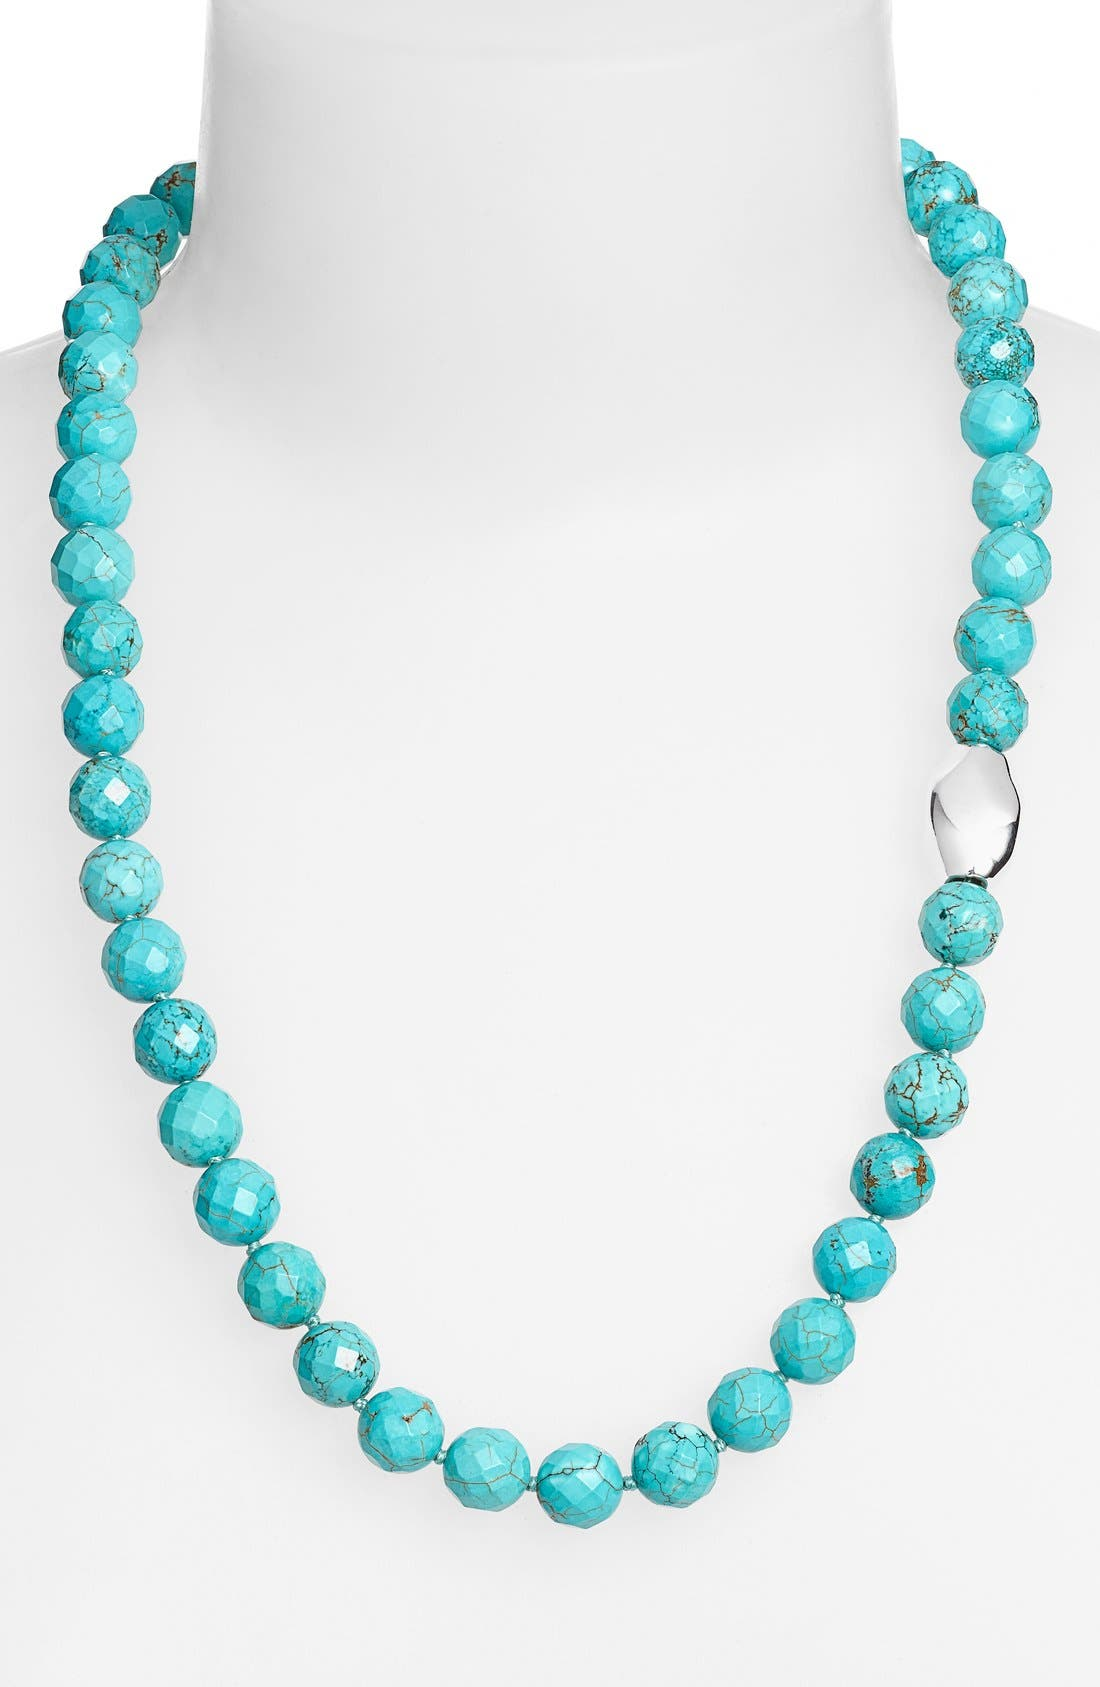 Stone Beaded Necklace,                             Main thumbnail 1, color,                             Silver Oval/ Turquoise